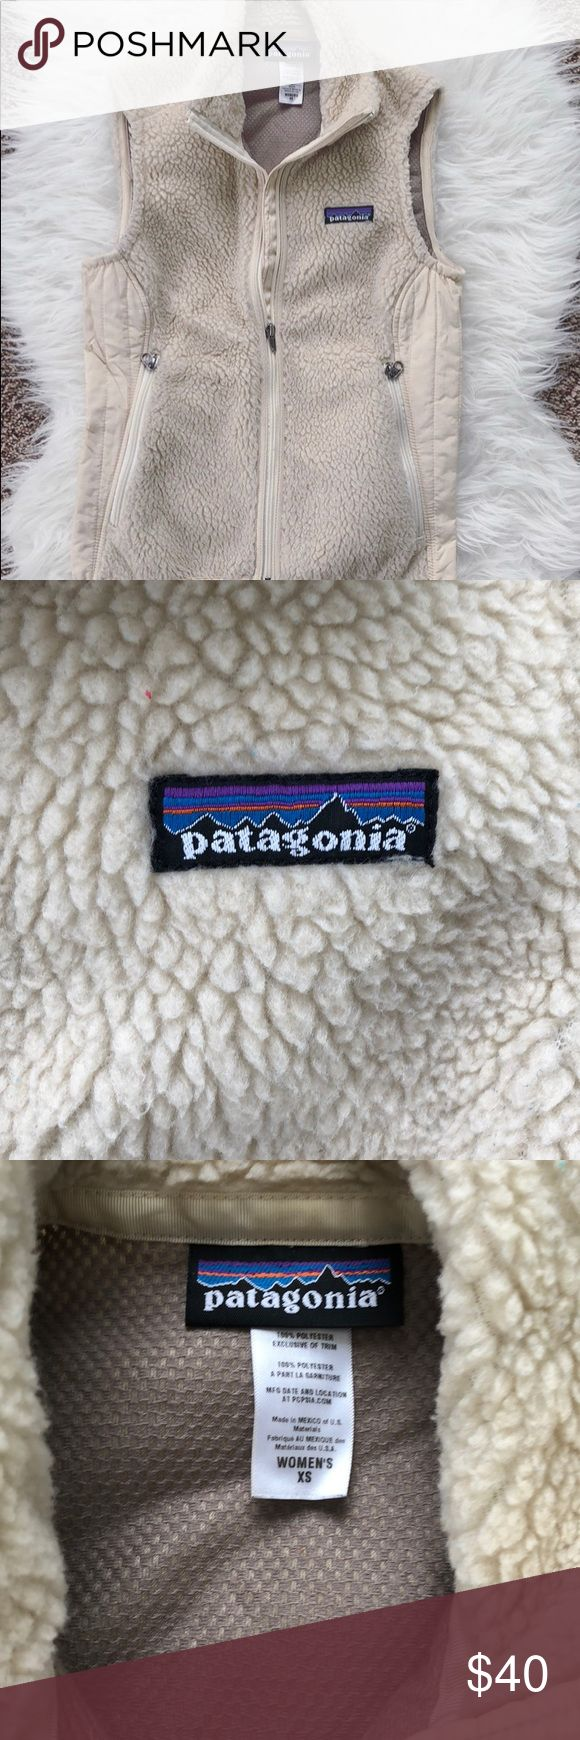 Patagonia Sherpa Vest Women's Patagonia Sherpa/Polyester Vest. Worn gently and still in good condition! Patagonia Jackets & Coats Vests